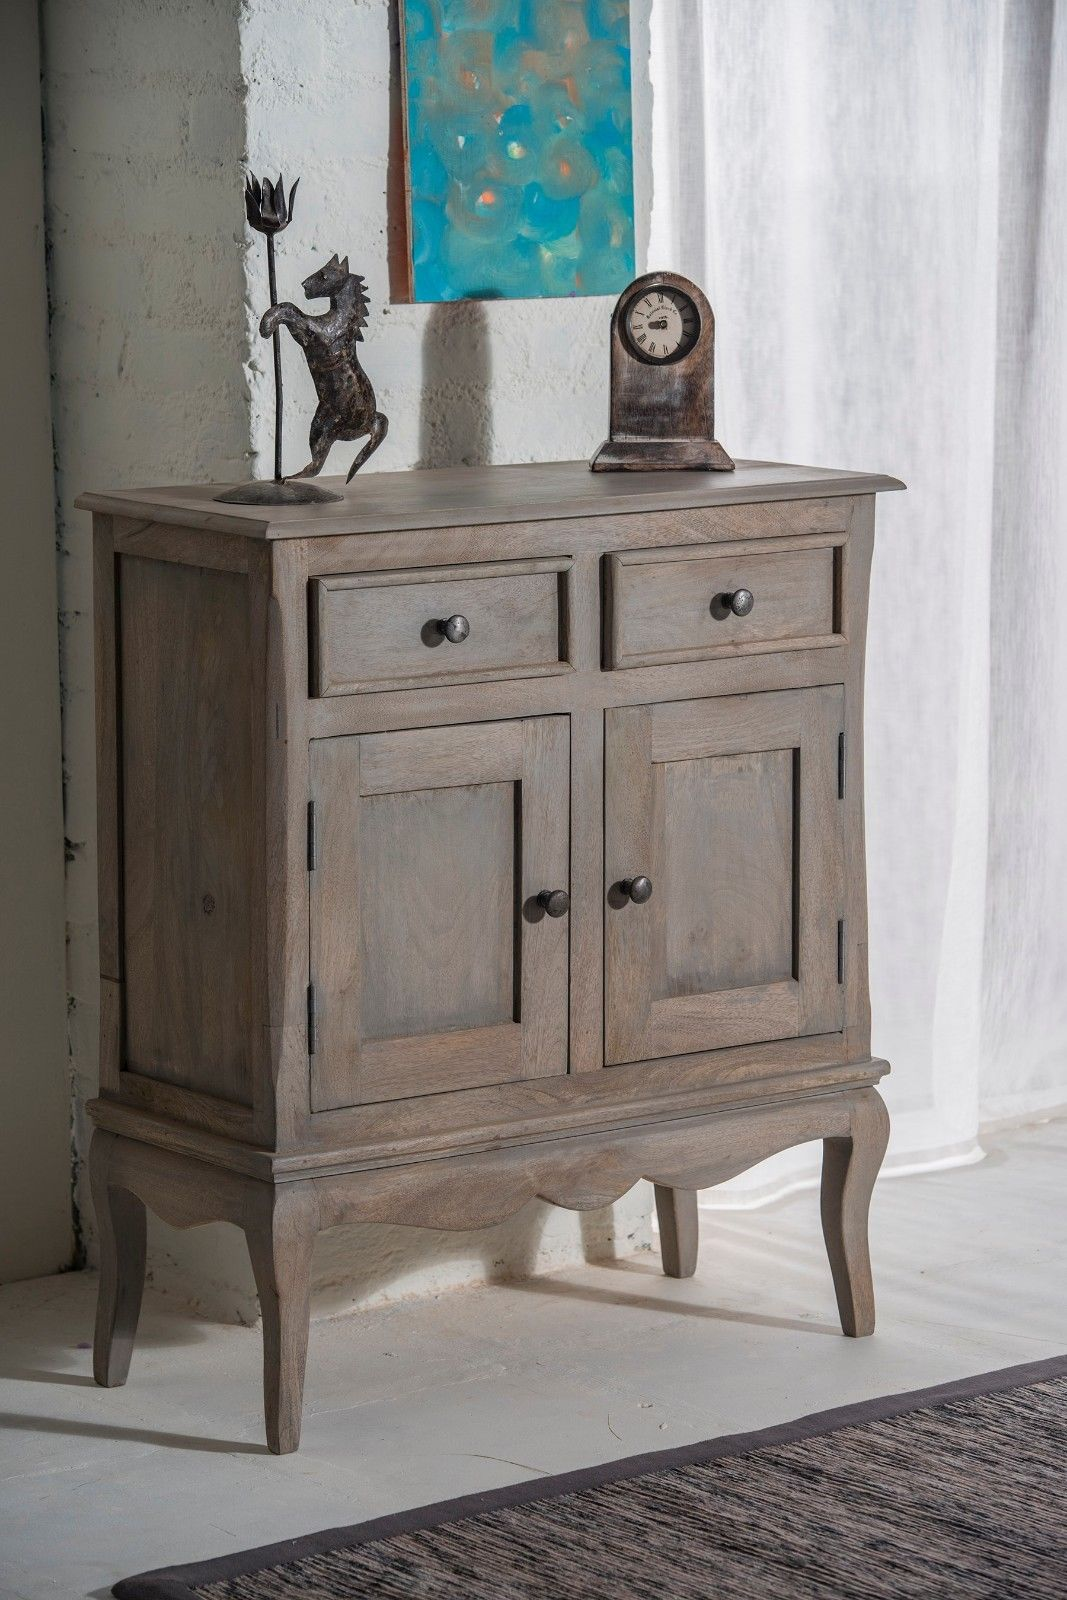 reputable site 4d7ac 21aae Bourdeilles Slim Sideboard Cupboard Hall Cabinet Solid Shabby Chic in Mango